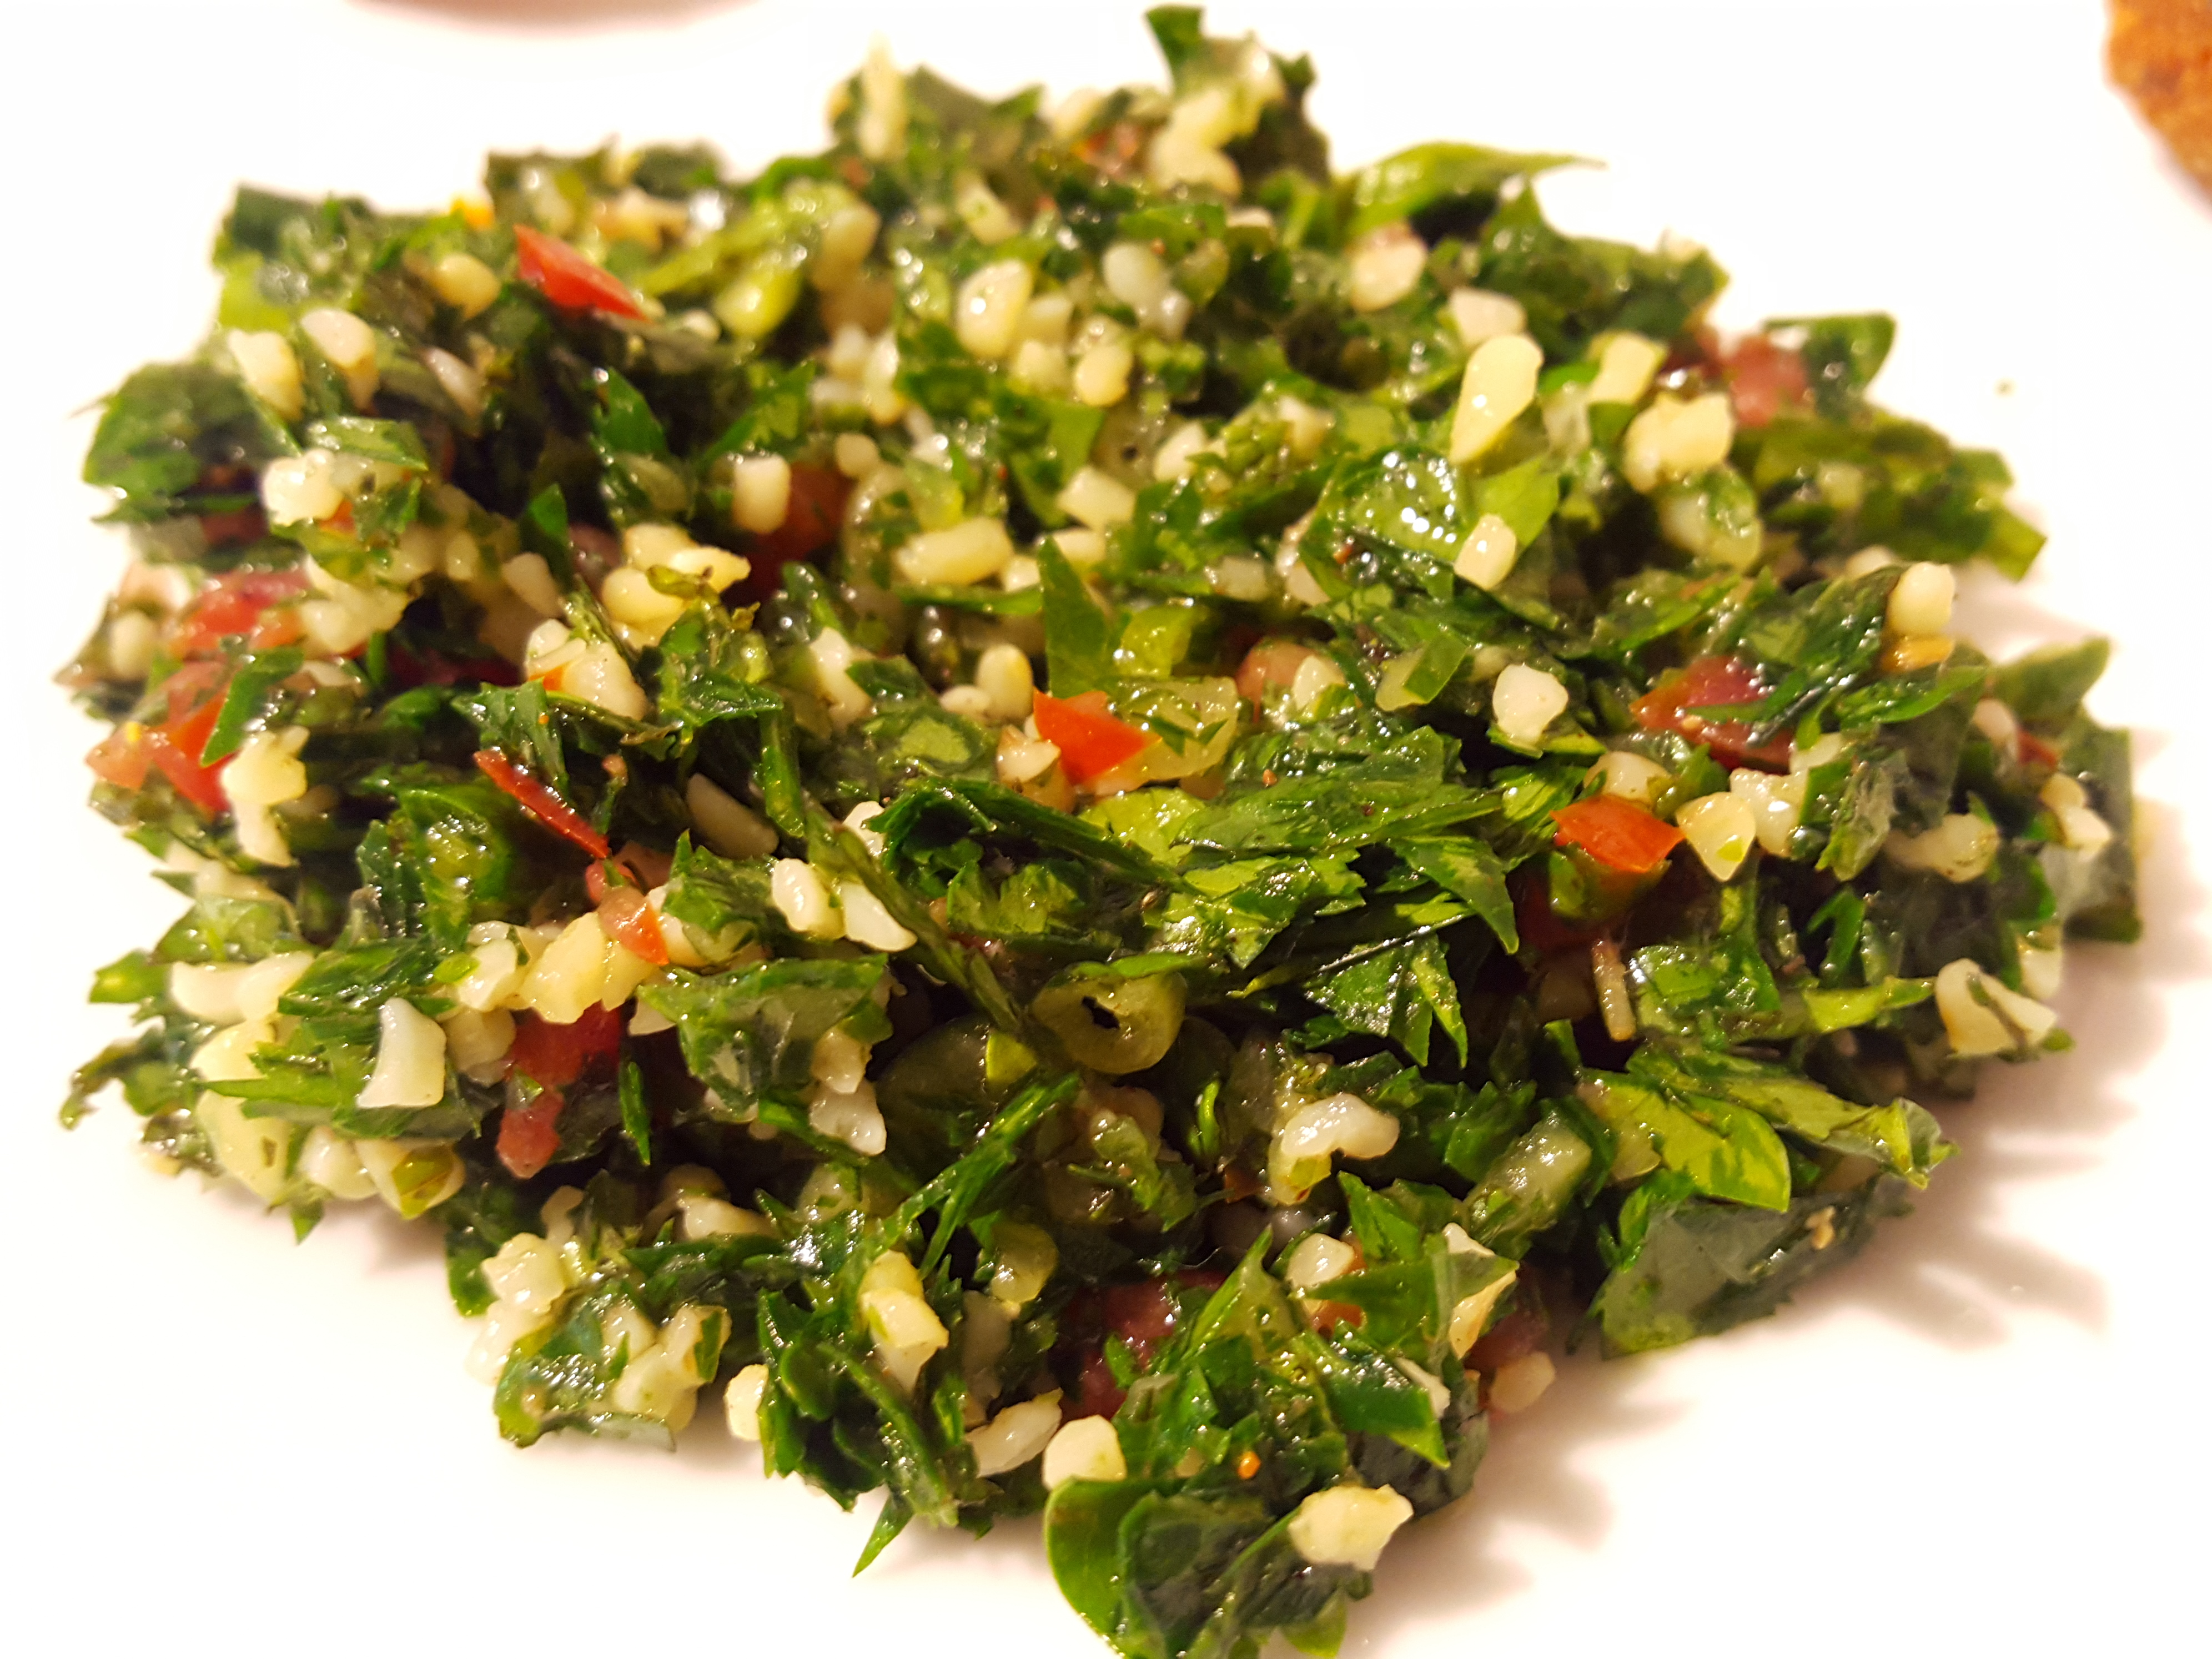 Recipes Course Salad Salads - Other Tabbouleh